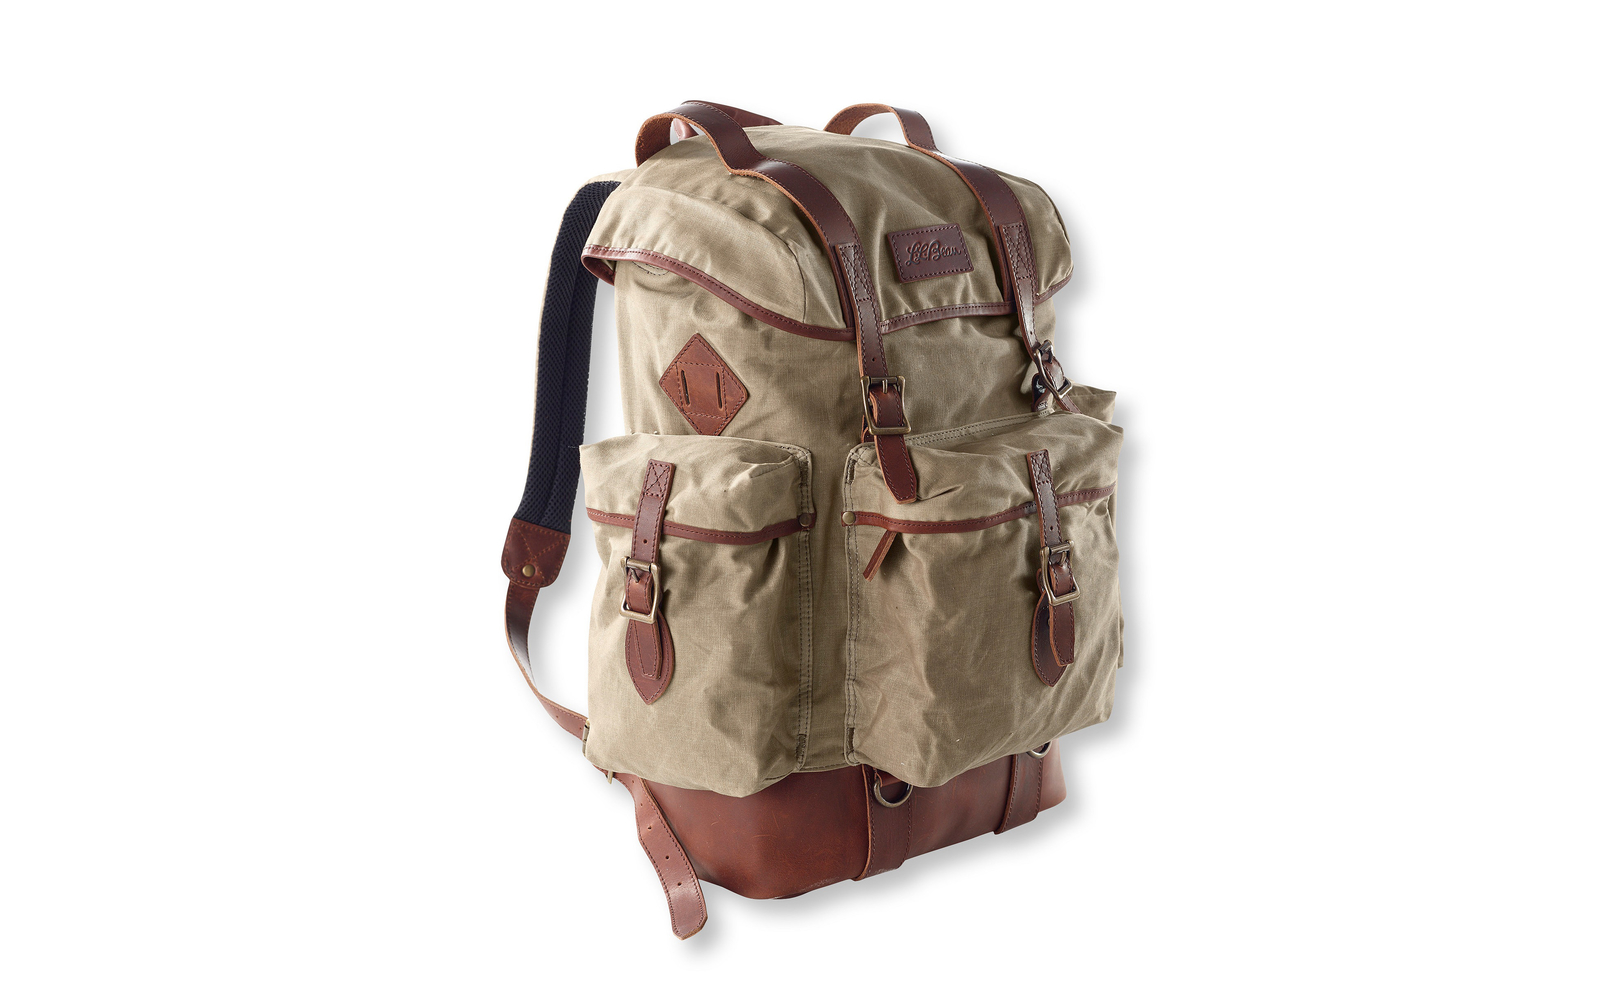 VERMONT0915-mens-llbeen-backpack.jpg